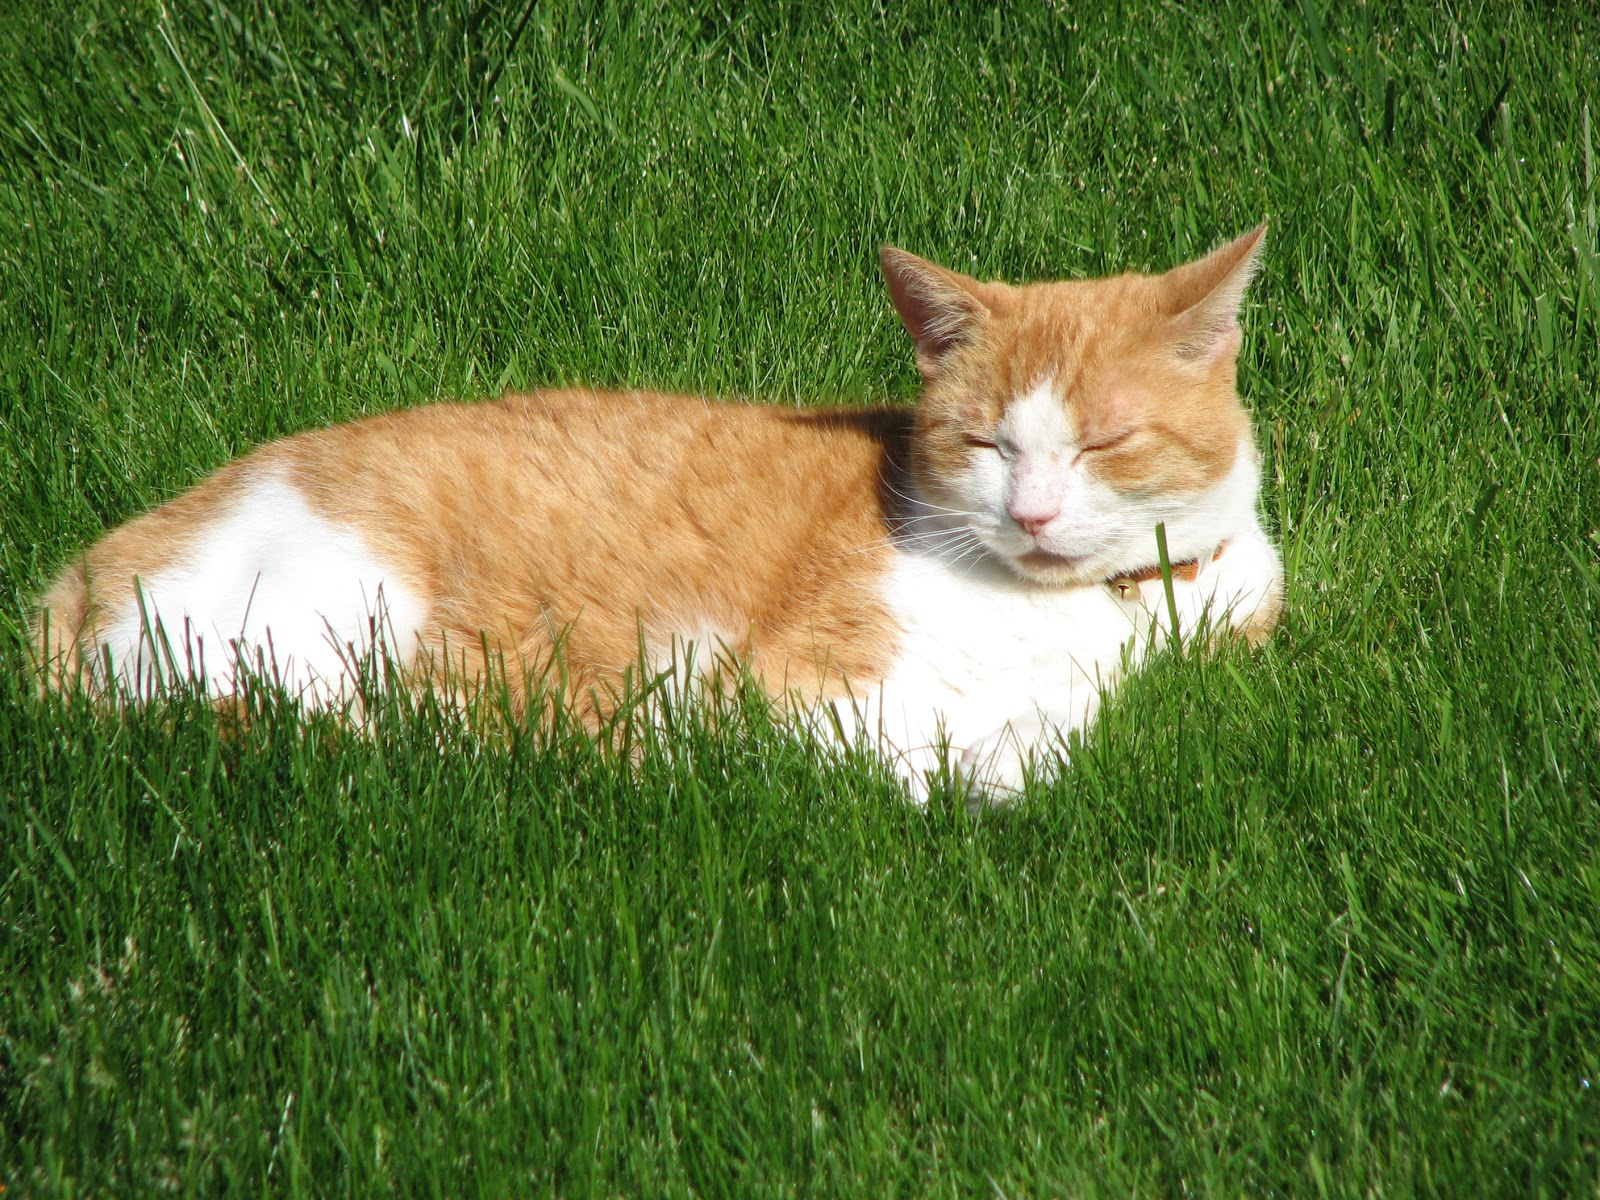 amoxicillin for cats with uti